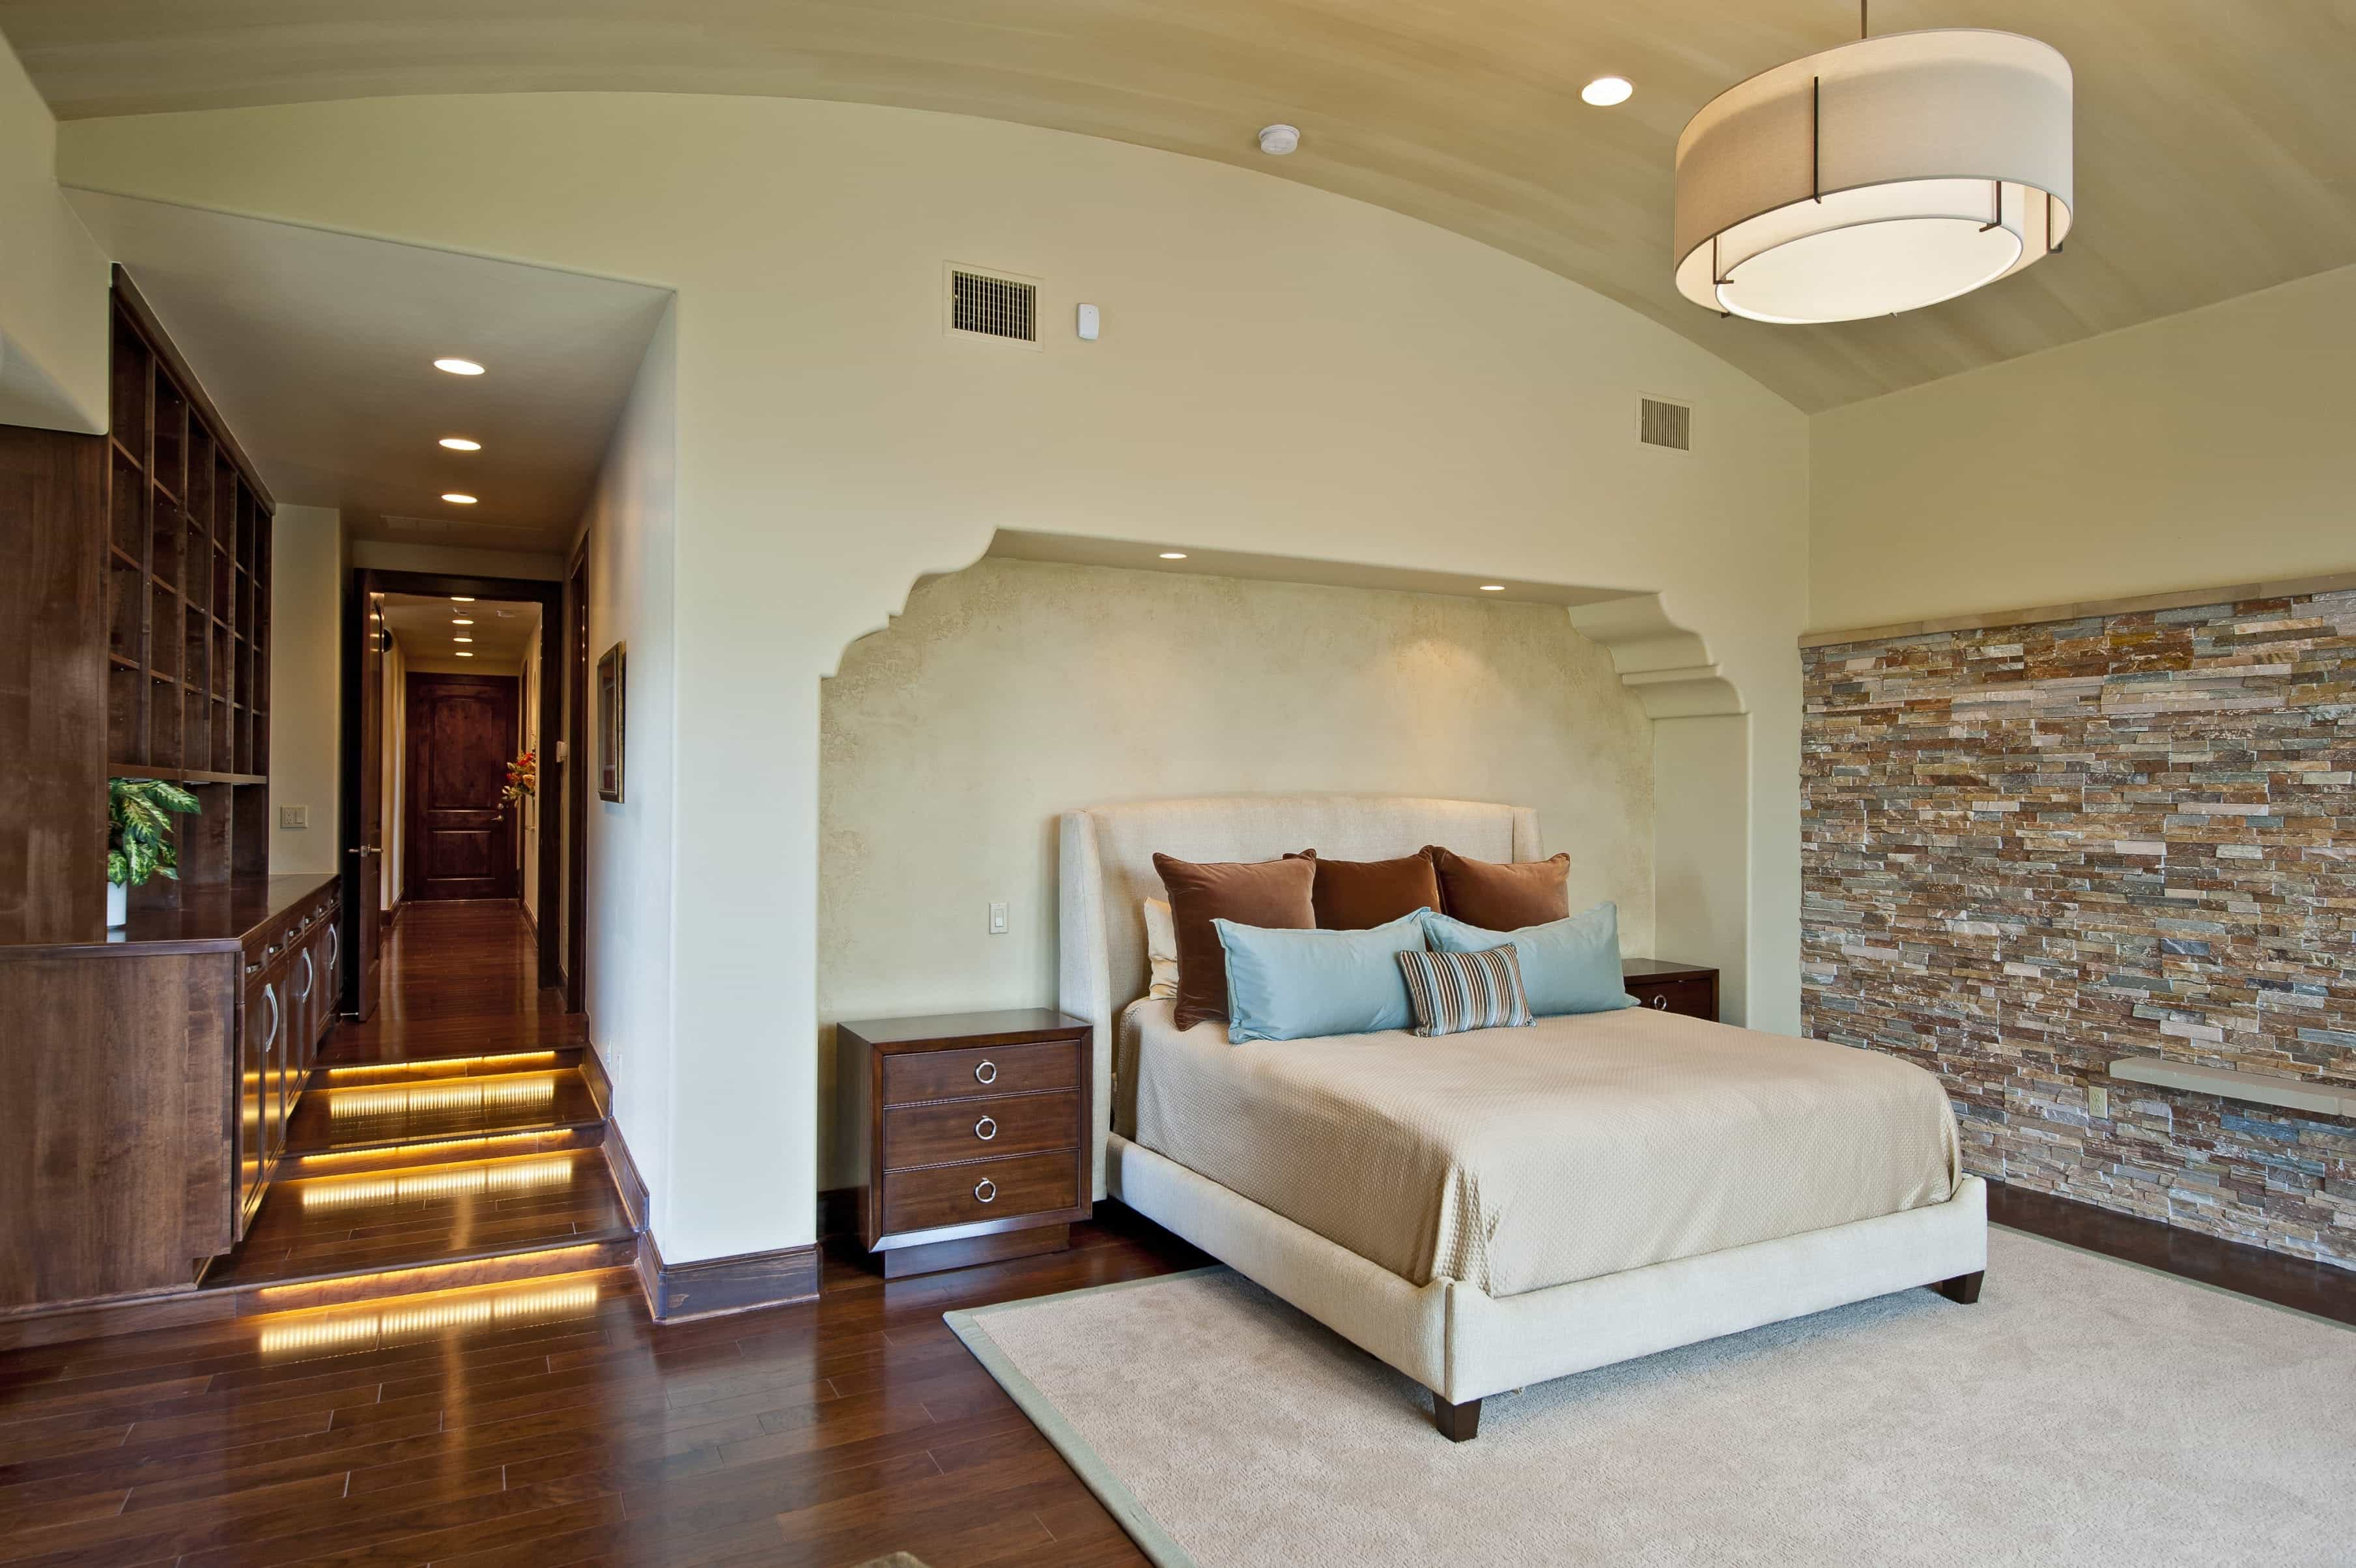 2017 Contemporary Bedroom With Stone Accent Wall (Image 3 of 28)